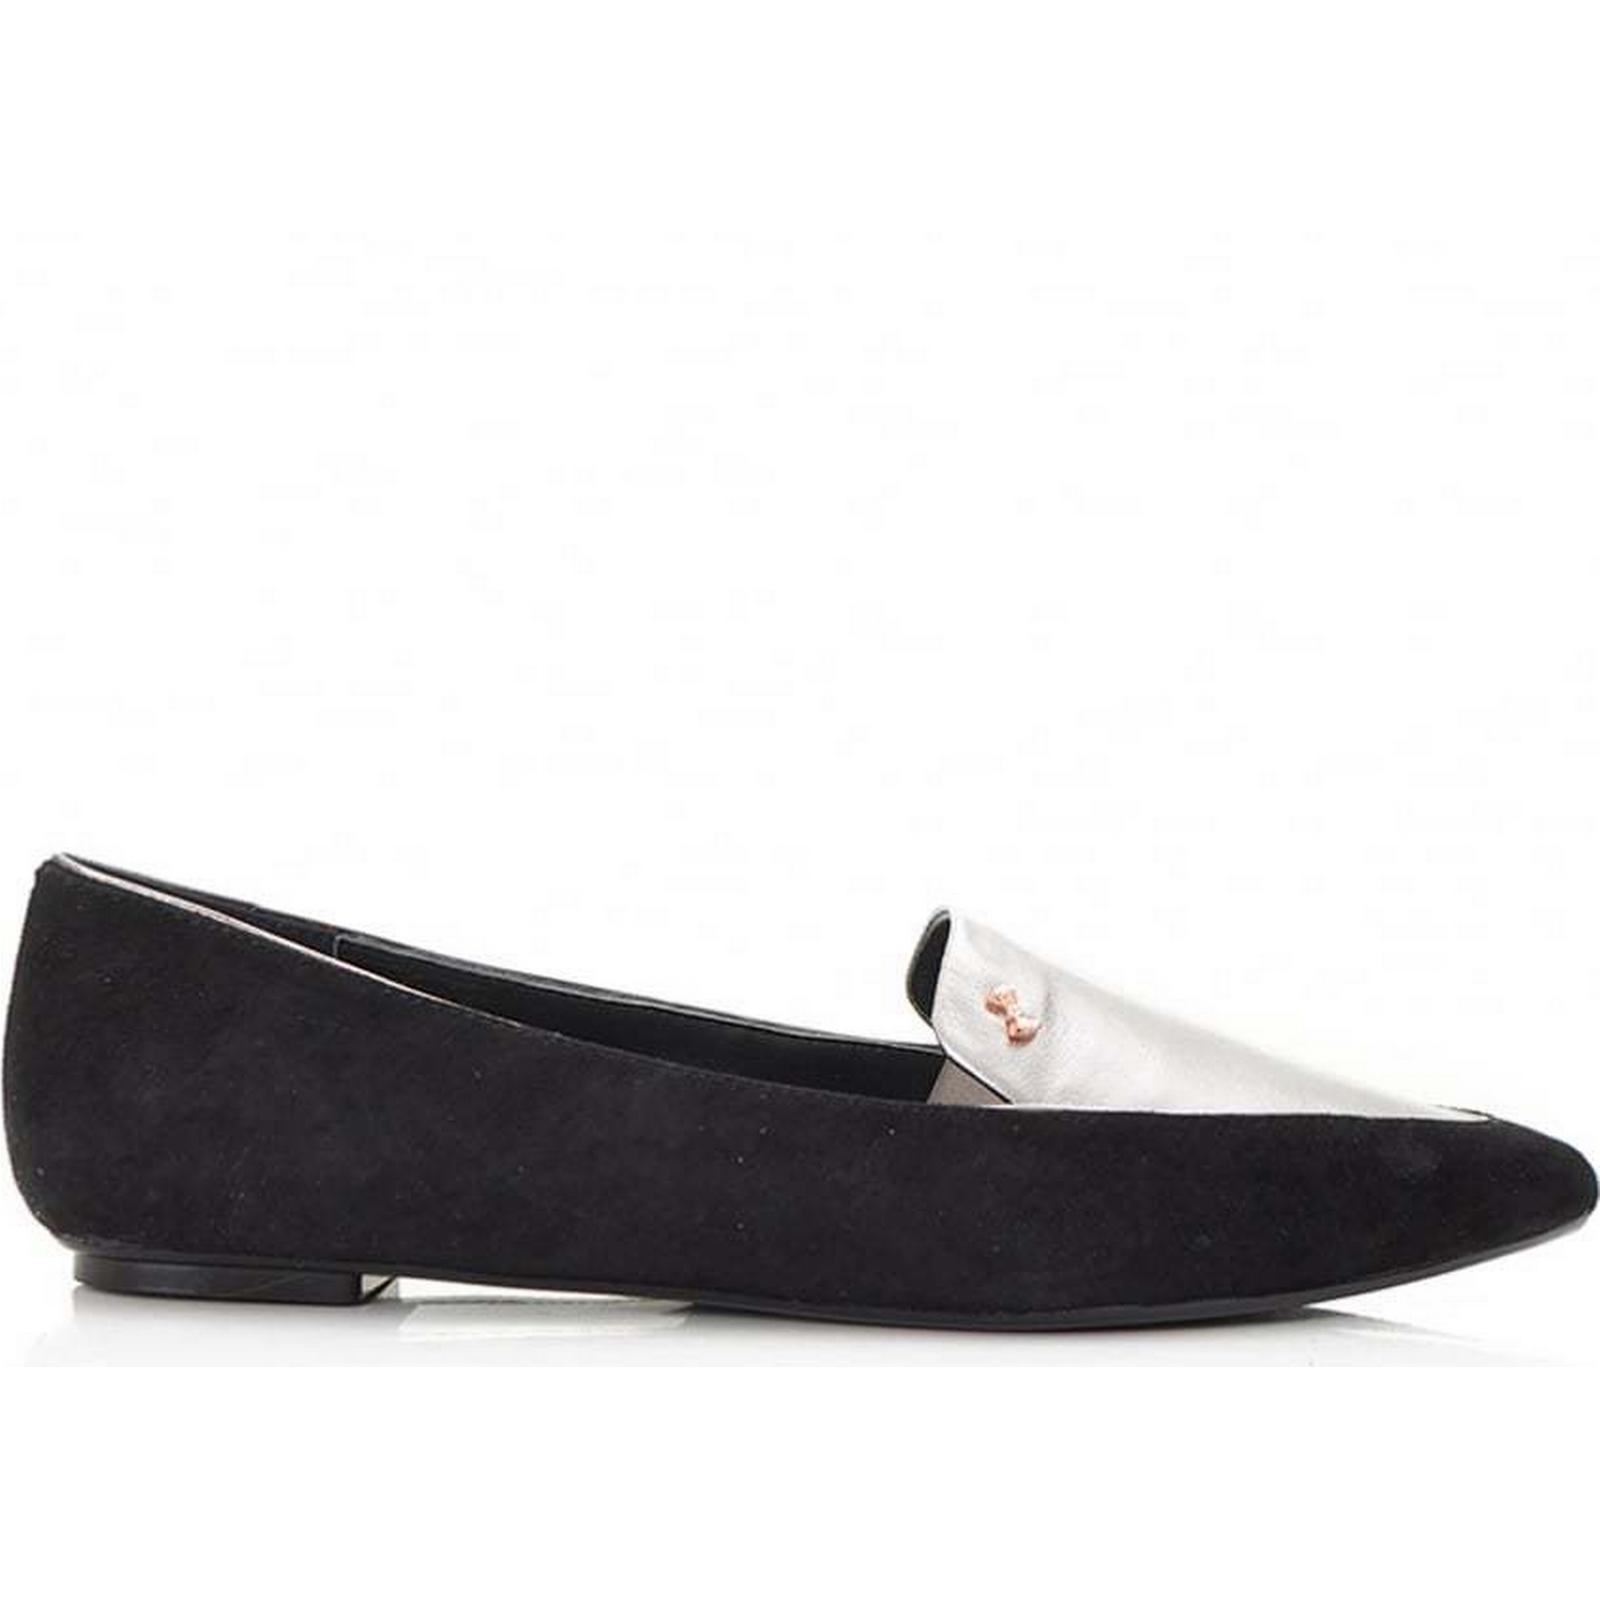 Ted Baker Pointed Suede BLACK, And Metallic Pumps Colour: BLACK, Suede Size: 5 8dd9c6